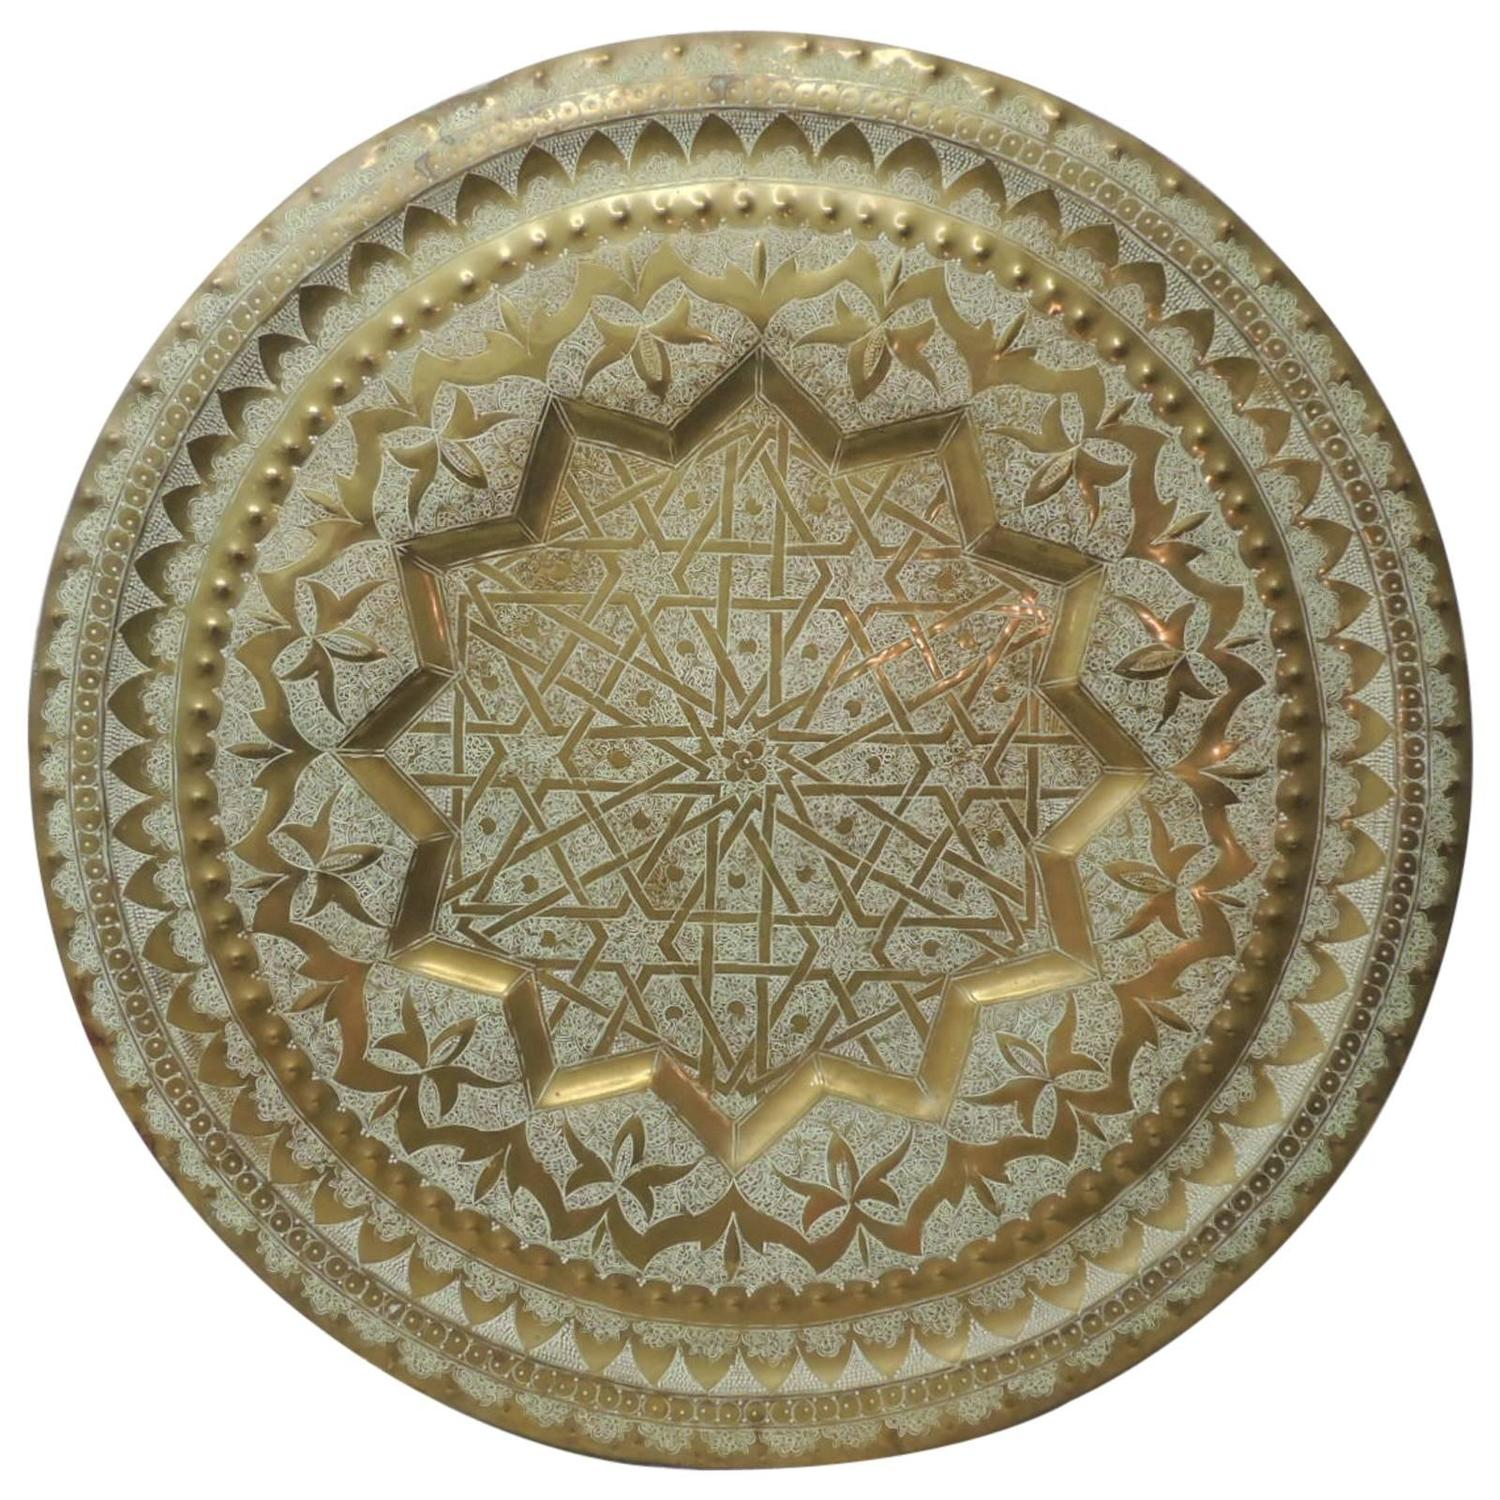 Hammered Coffee Table Tray: Large Round Hand-Hammered Moroccan Tray Coffee Table For